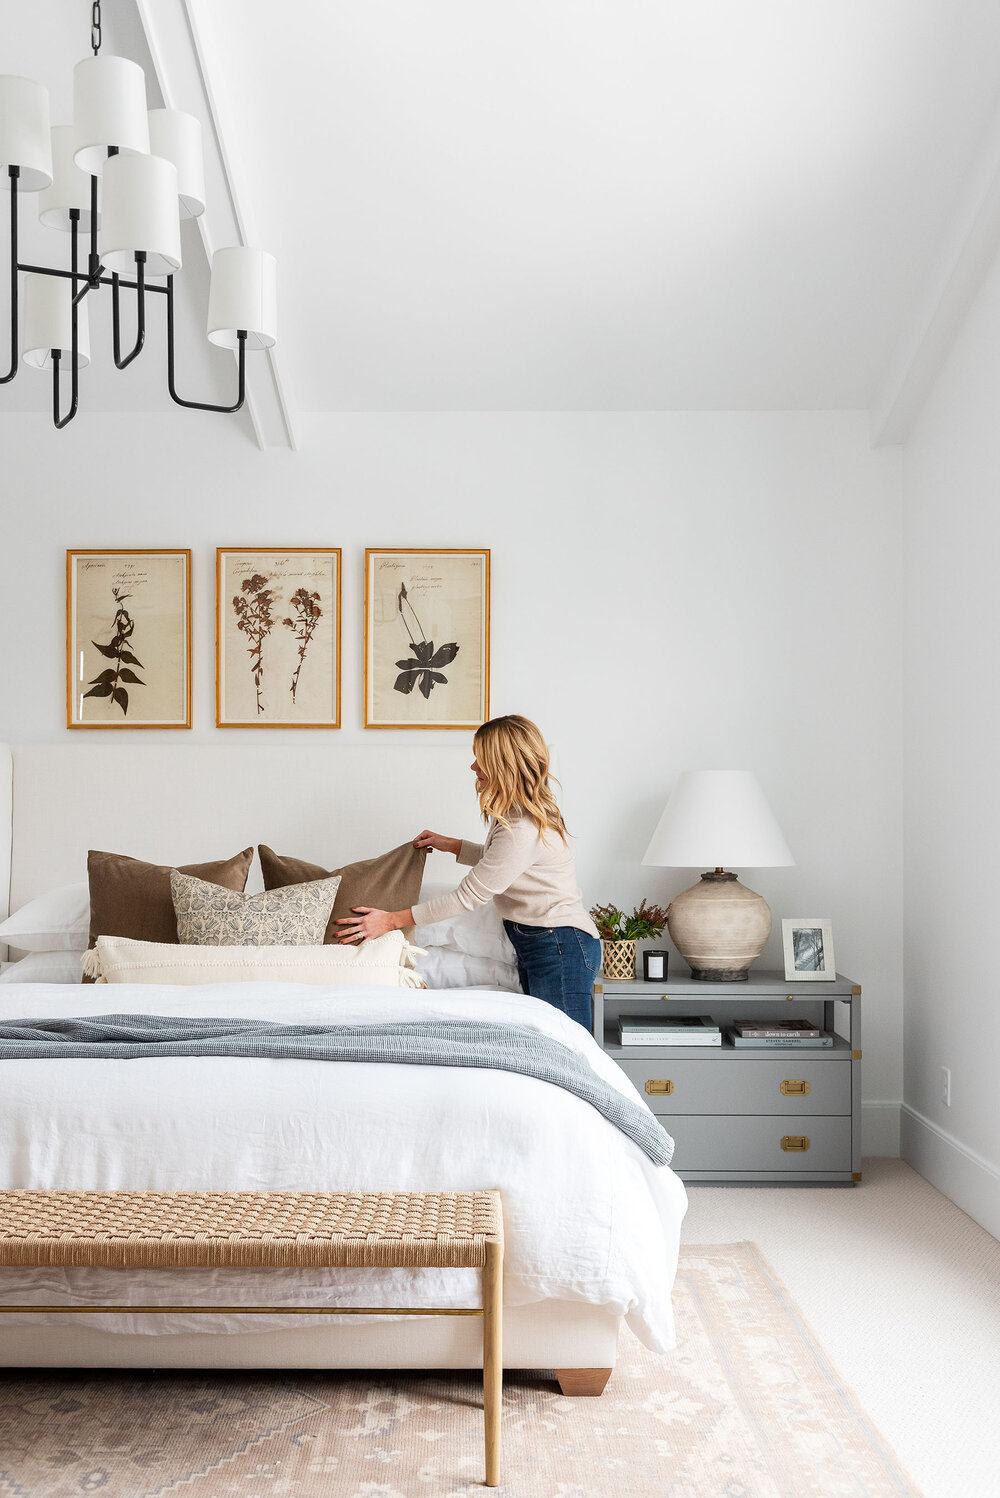 Our step by step guide to styling a bed